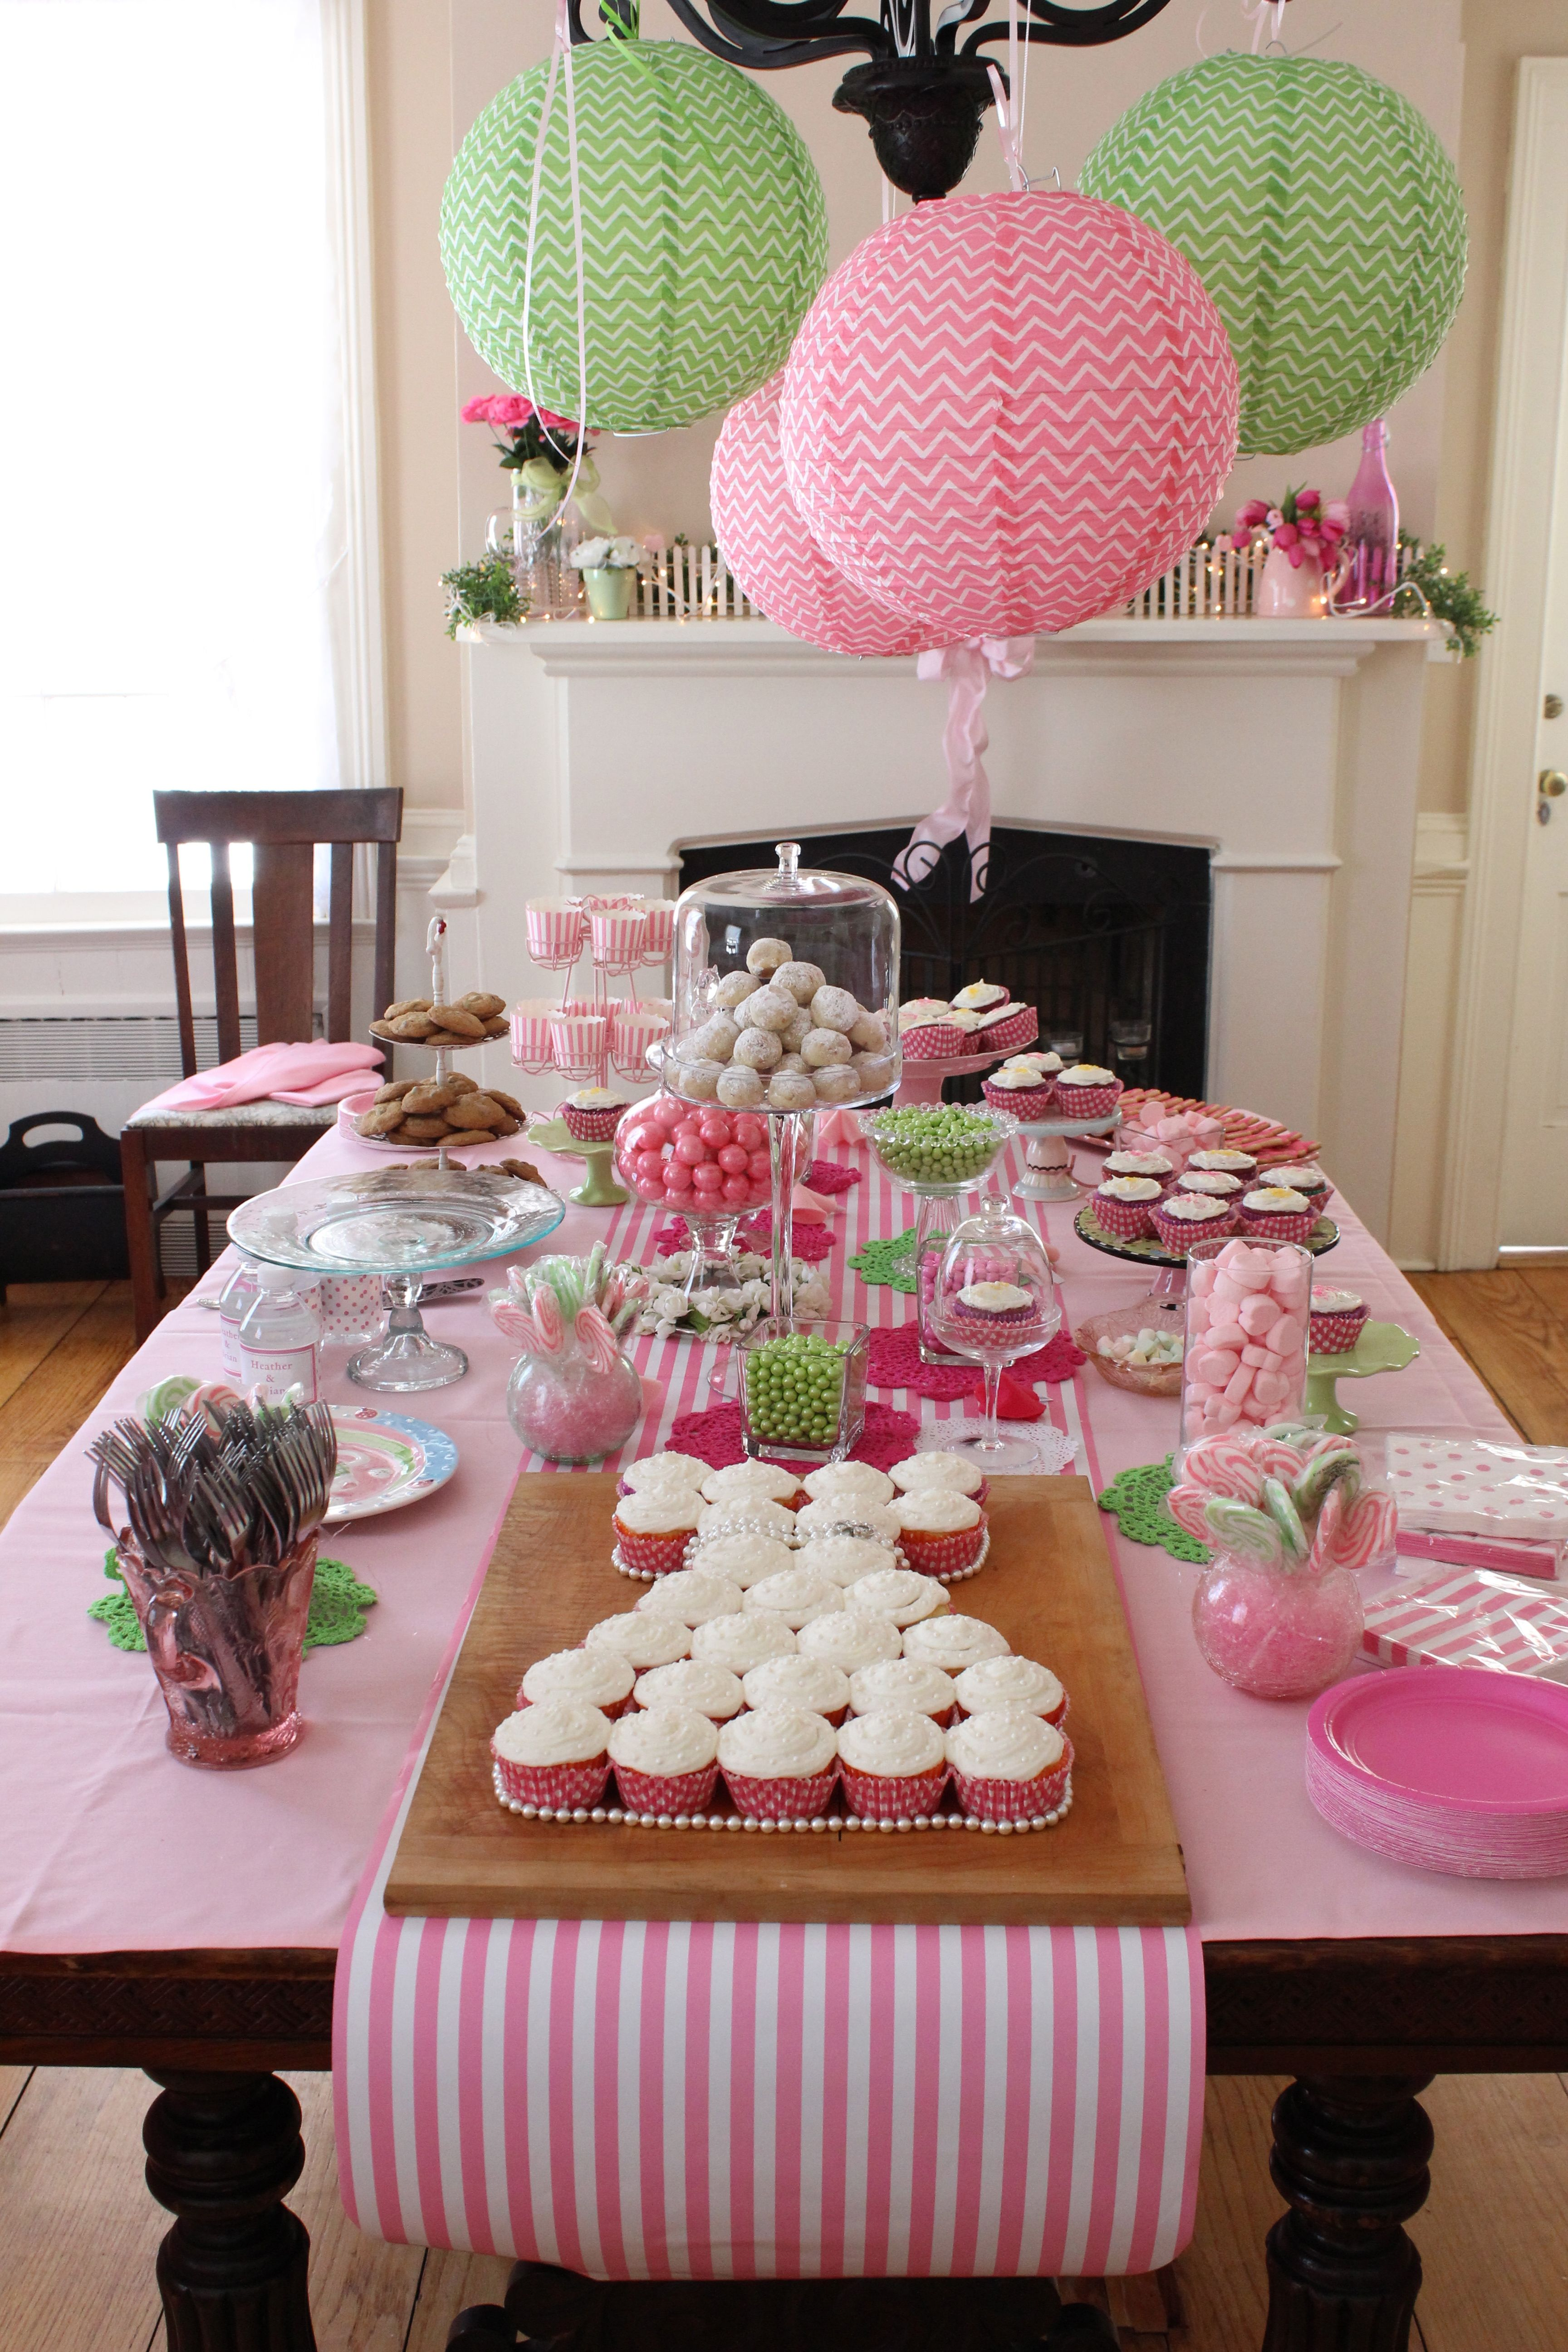 Bridal shower table decor table decorations pinterest Bridal shower table decorations